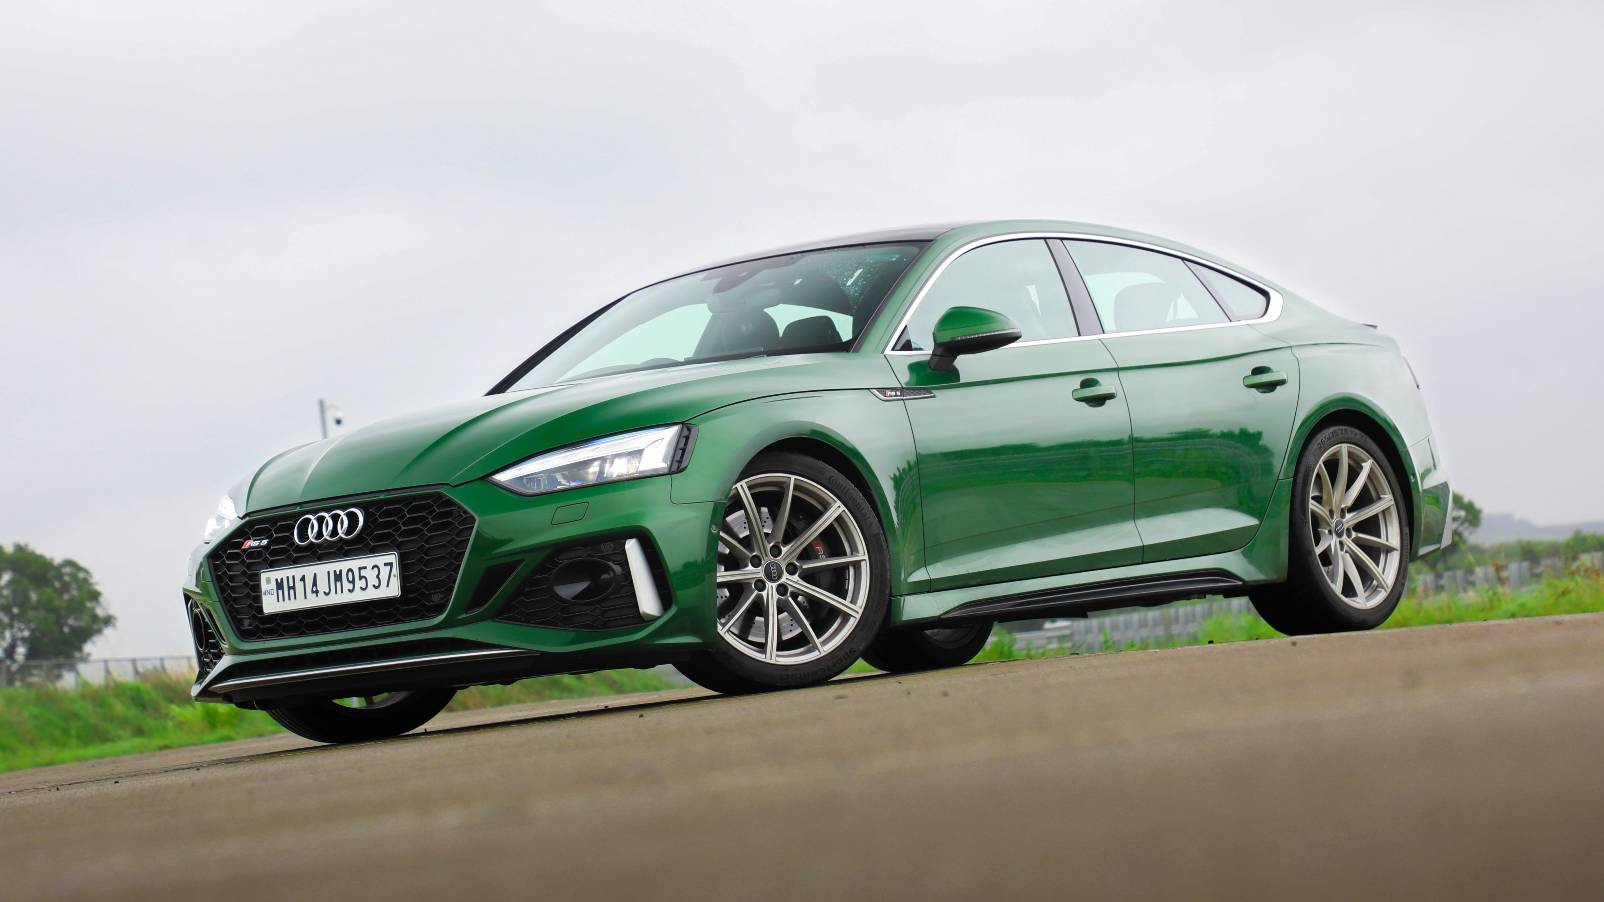 Audi RS5 Sportback launched in India for 1.04 billion rubles, 450 hp V6 turbo petrol engine - Technology News, Firstpost